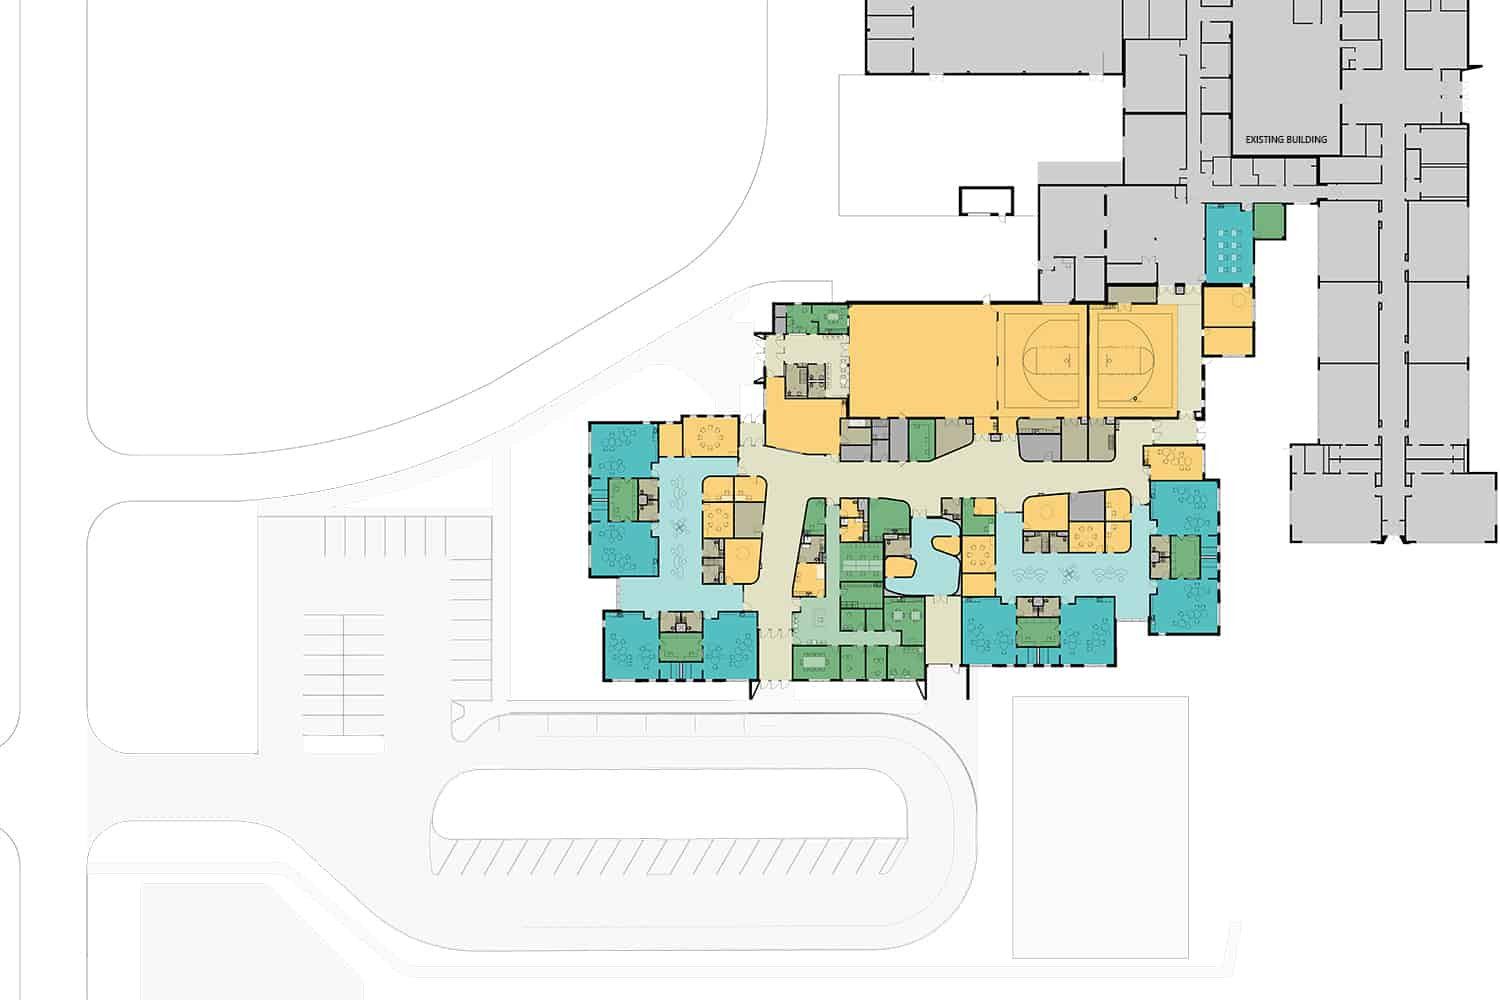 Colored floor plan depicting the Lewis & Clark Elementary School addition.